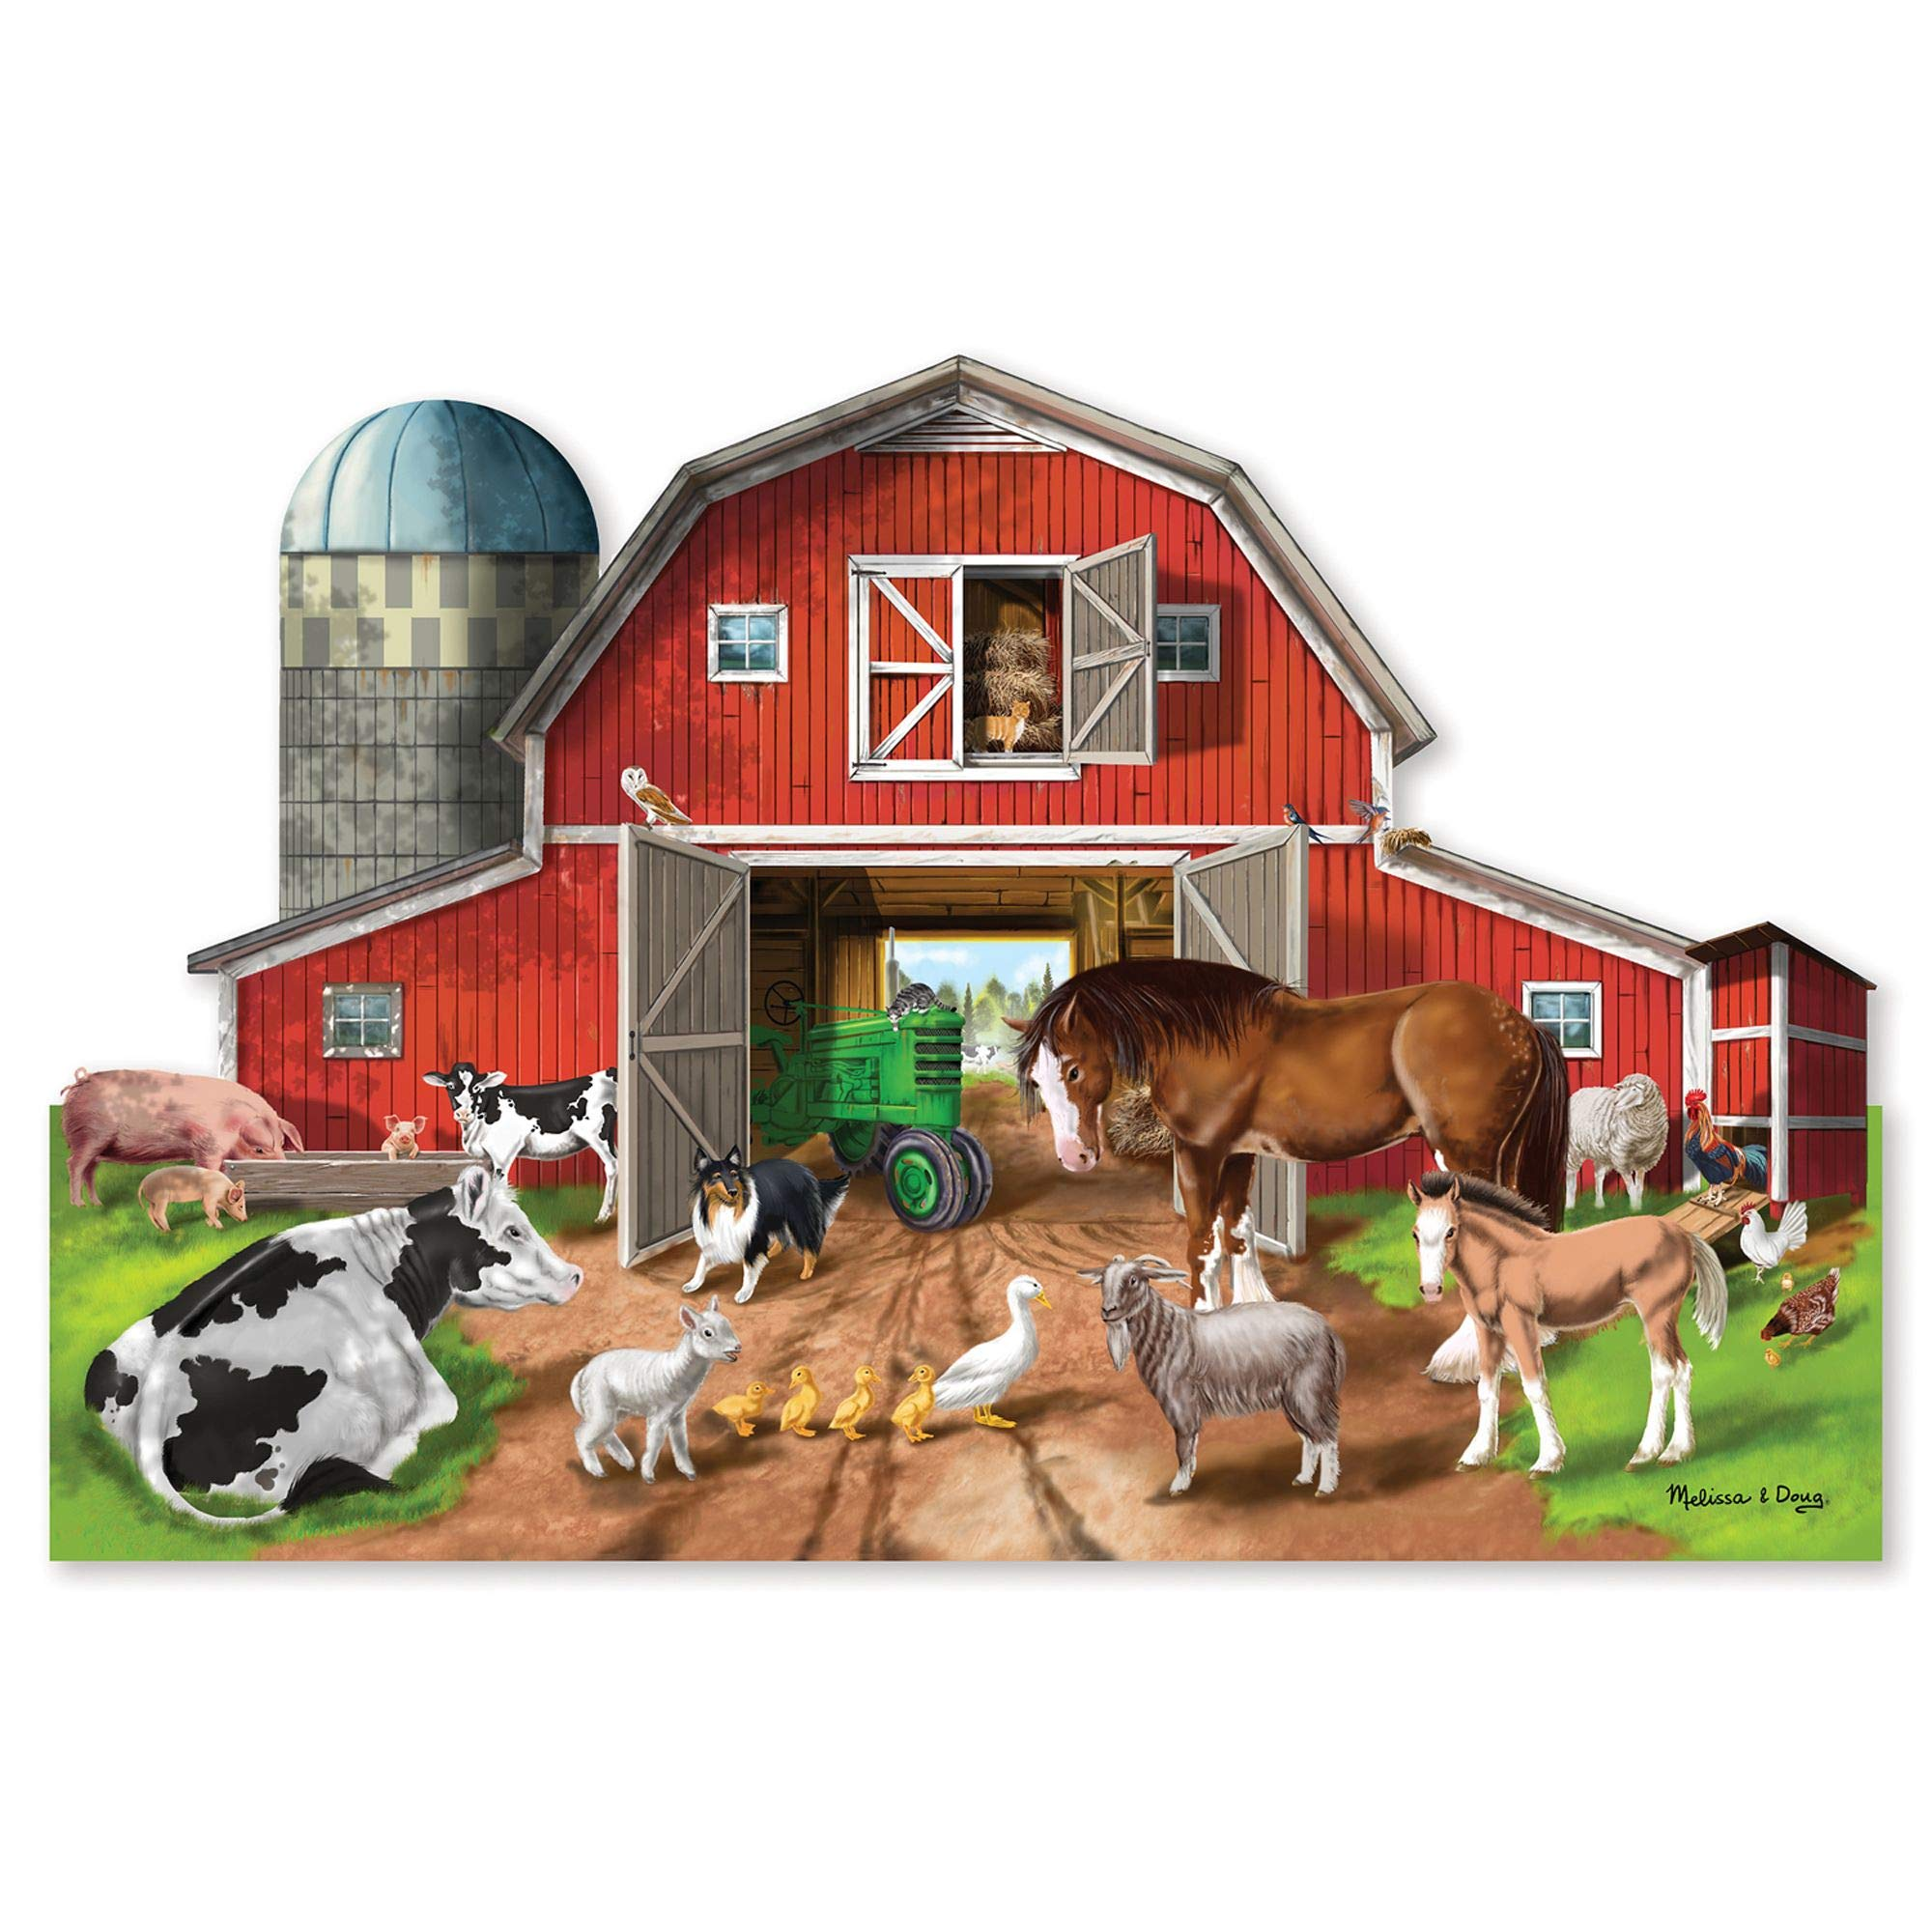 Melissa & Doug Busy Barnyard-Shaped Floor Puzzle, Beautiful Original Artwork, Sturdy Cardboard Pieces, 32 Pieces, 2' x 3'